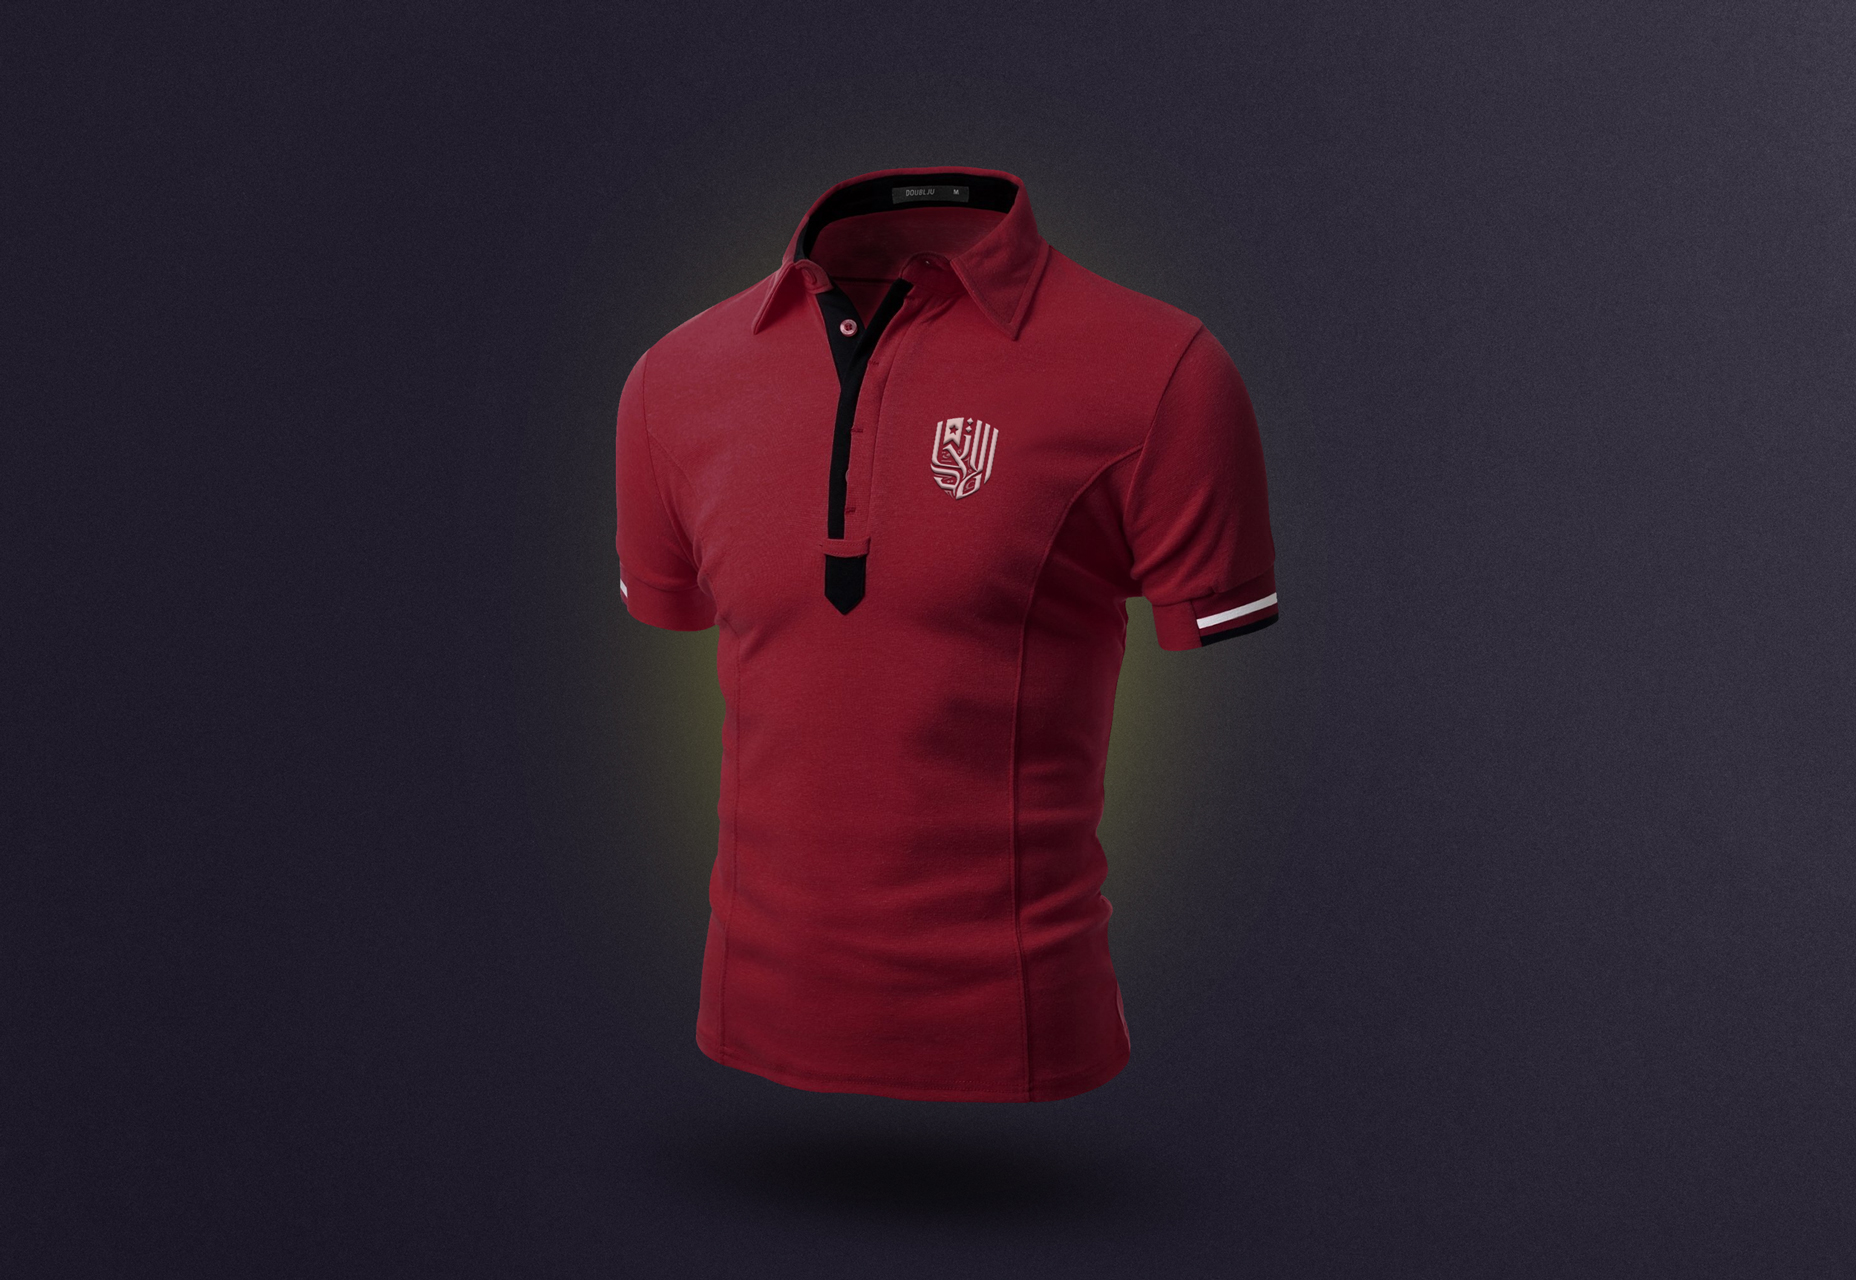 Polo T-Shirt PSD